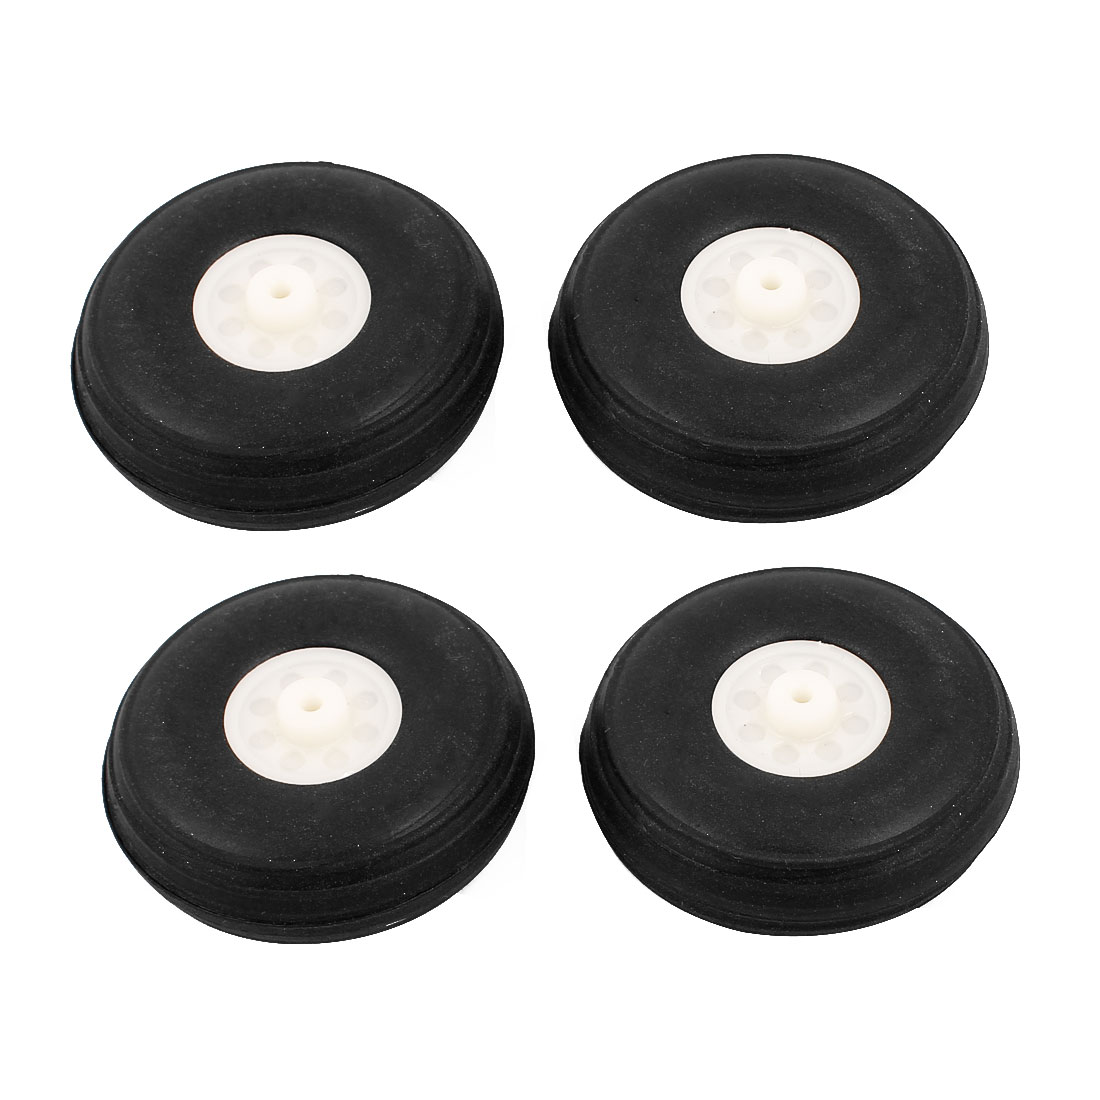 DIY RC Airplane Aircraft Landing Robot Part Black Rubber Wheel Tire Tyre 44mm x 16mm 4Pcs